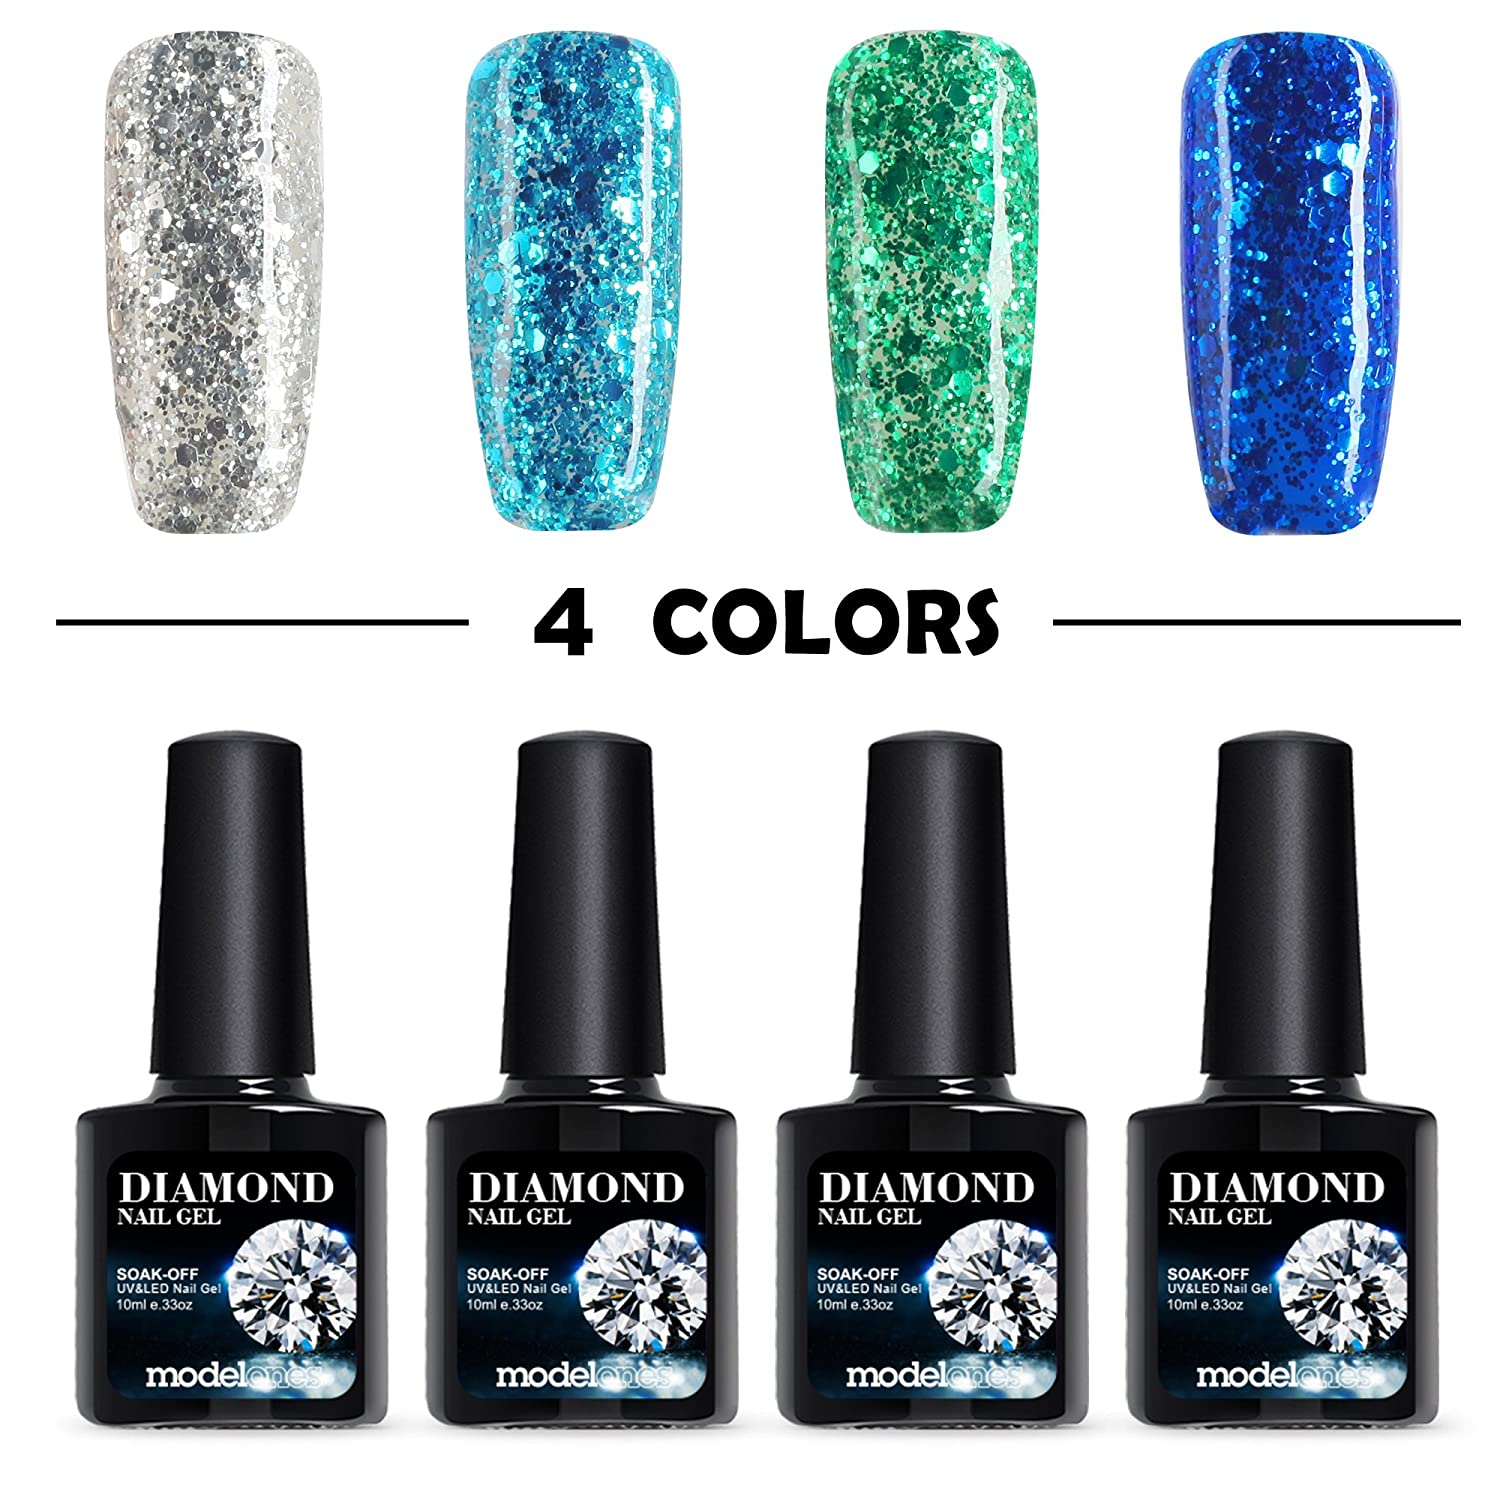 Amazon.com : Modelones Diamond Series Soak Off UV LED Gel Nail ...